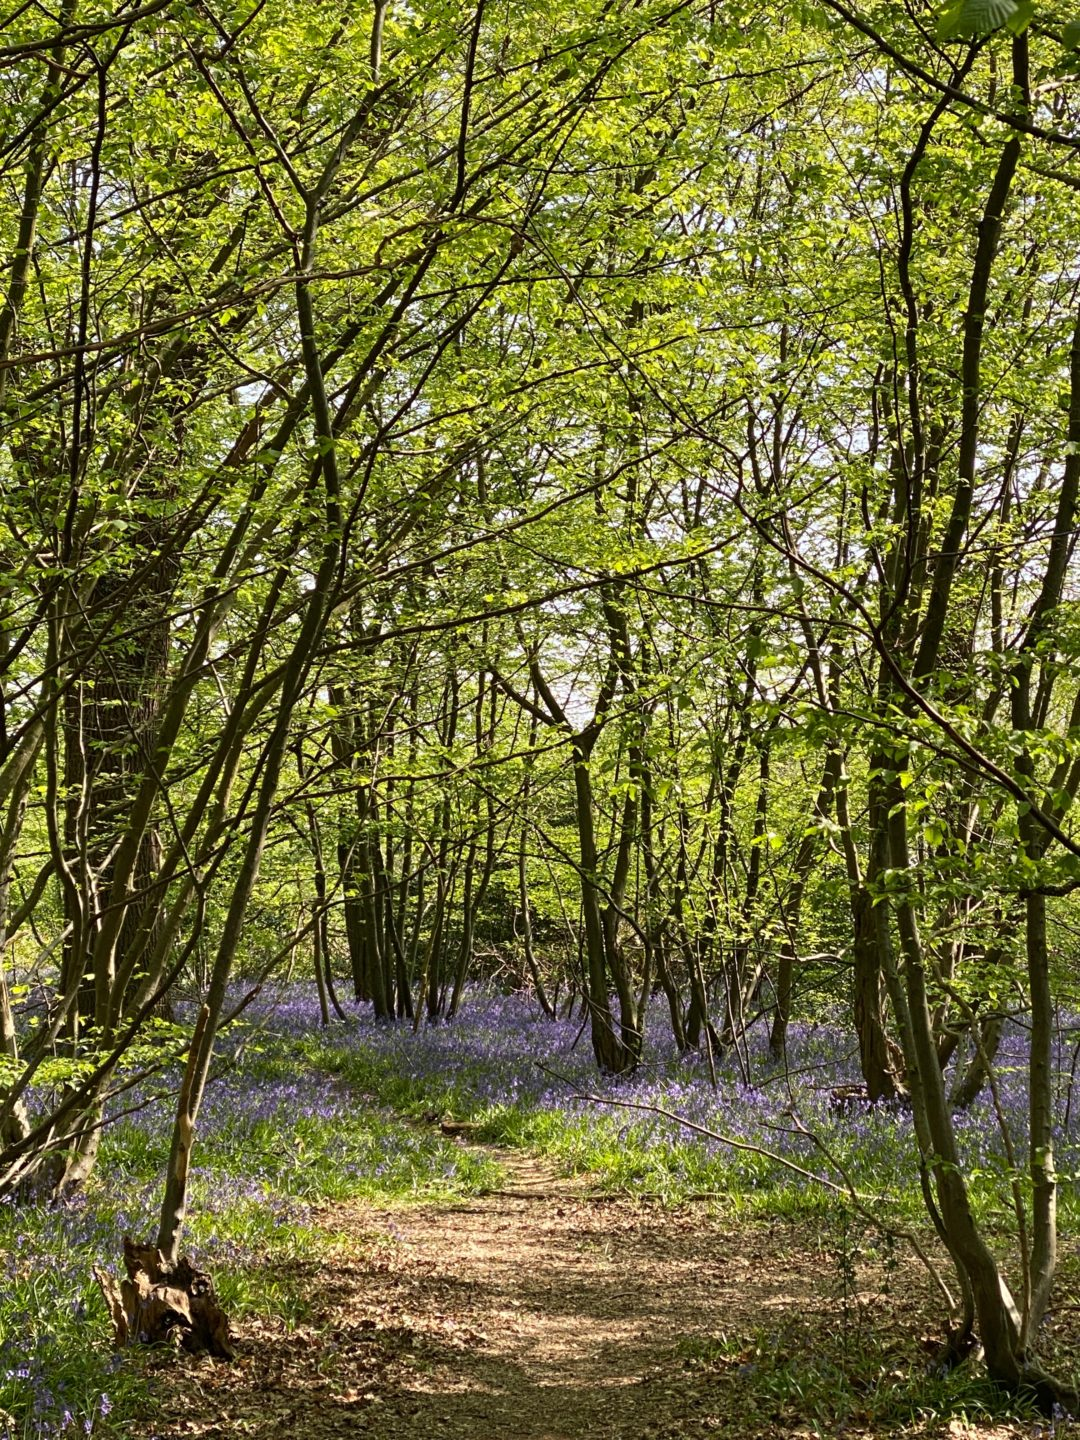 The best place to see bluebells in West London